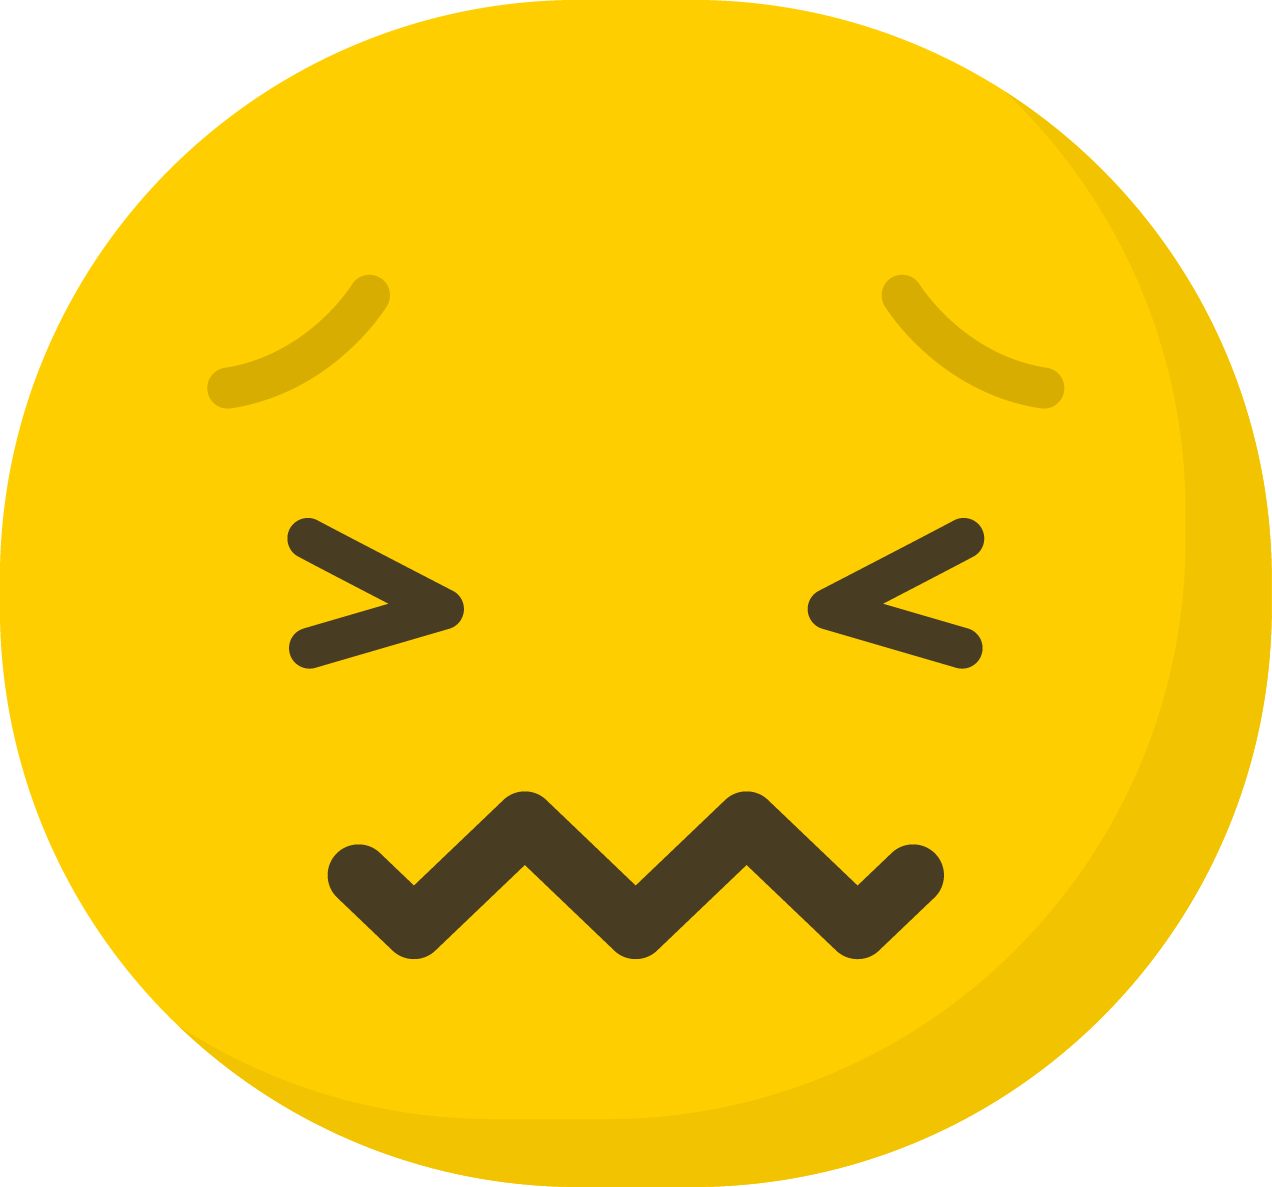 Emoji King messages sticker-10